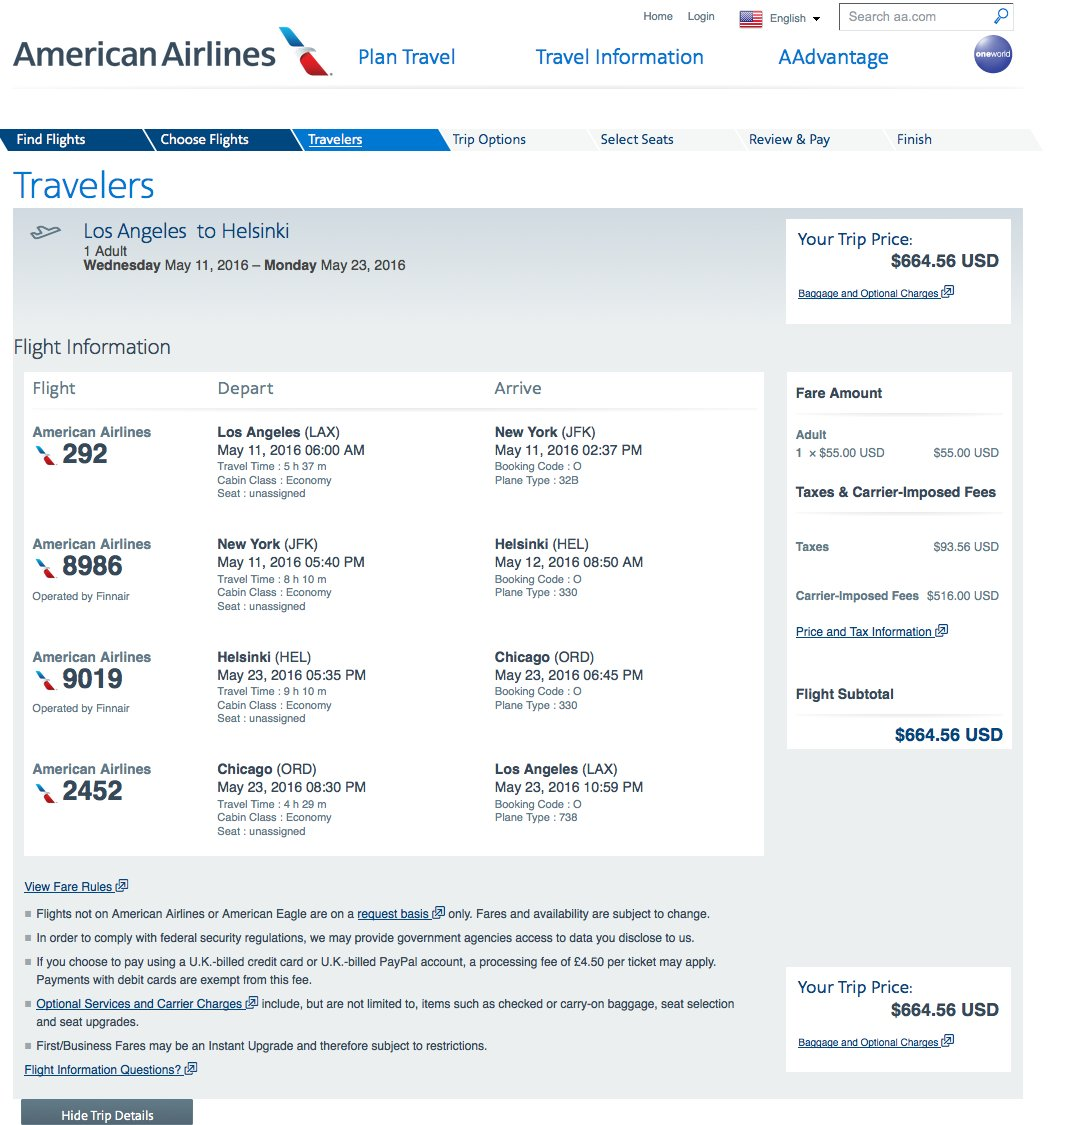 RT @airfarewatchdog: LAX to Helsinki HEL $665 round-trip on @AmericanAir for May travel